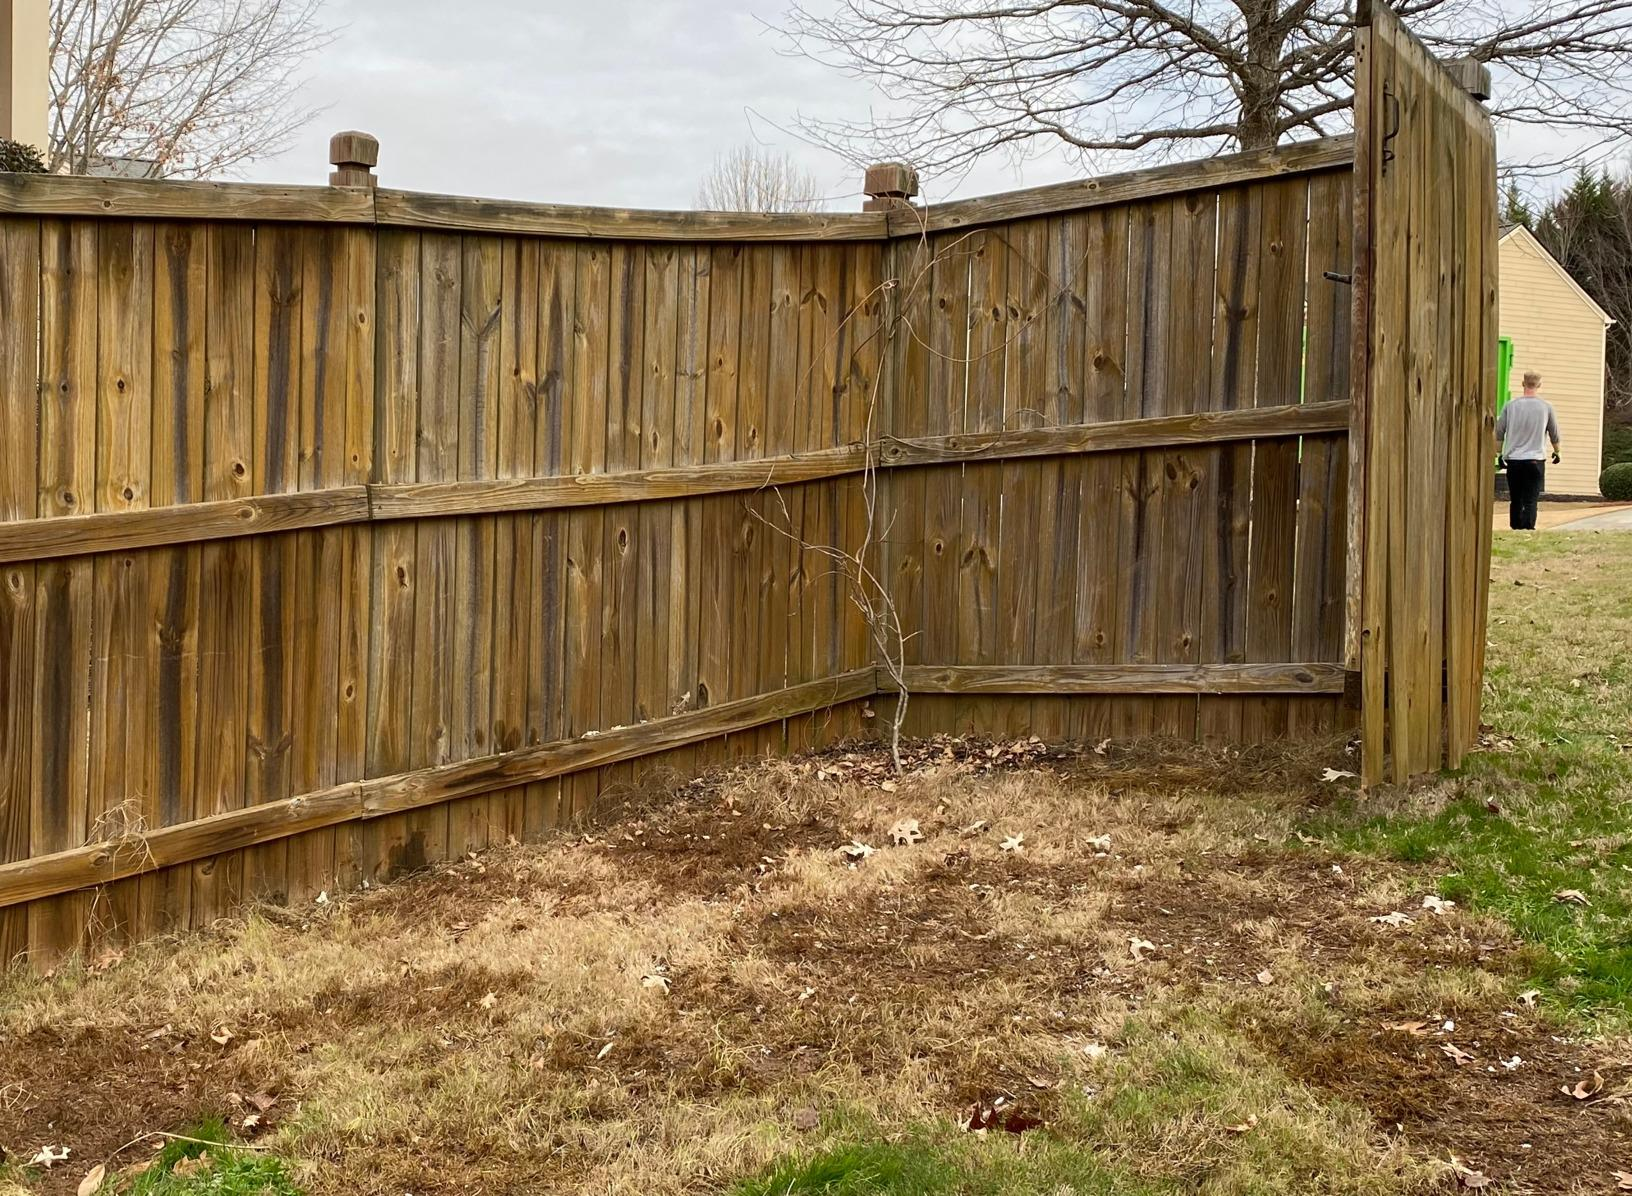 Construction Debris Removal in Cumming, GA - After Photo